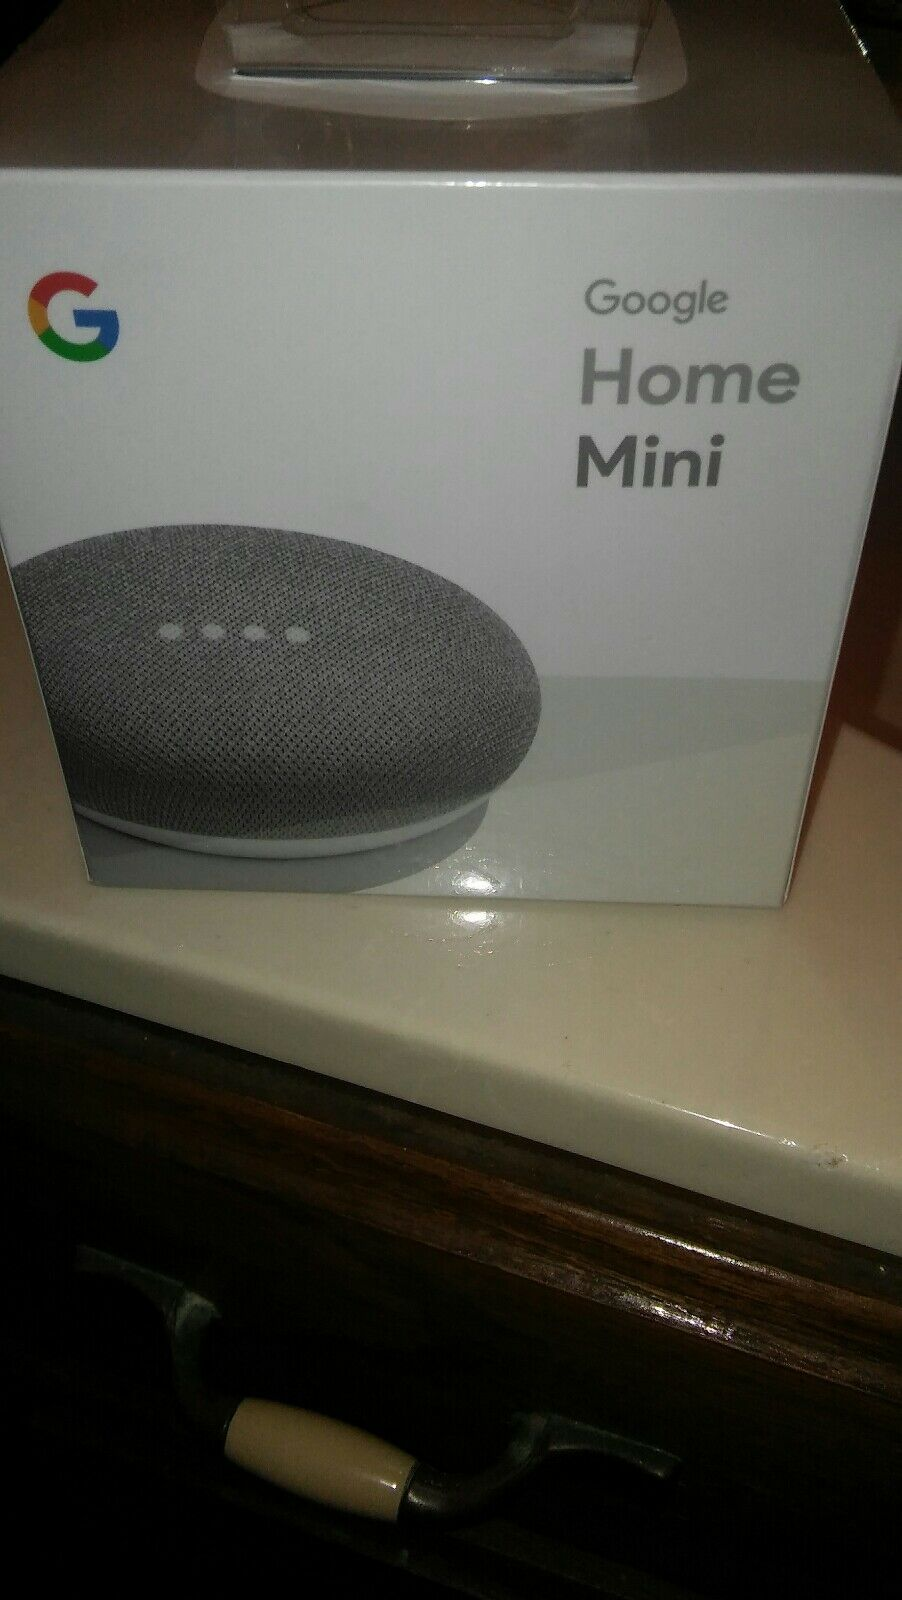 Google Home Mini assistant  (Chalk)-powered by Google